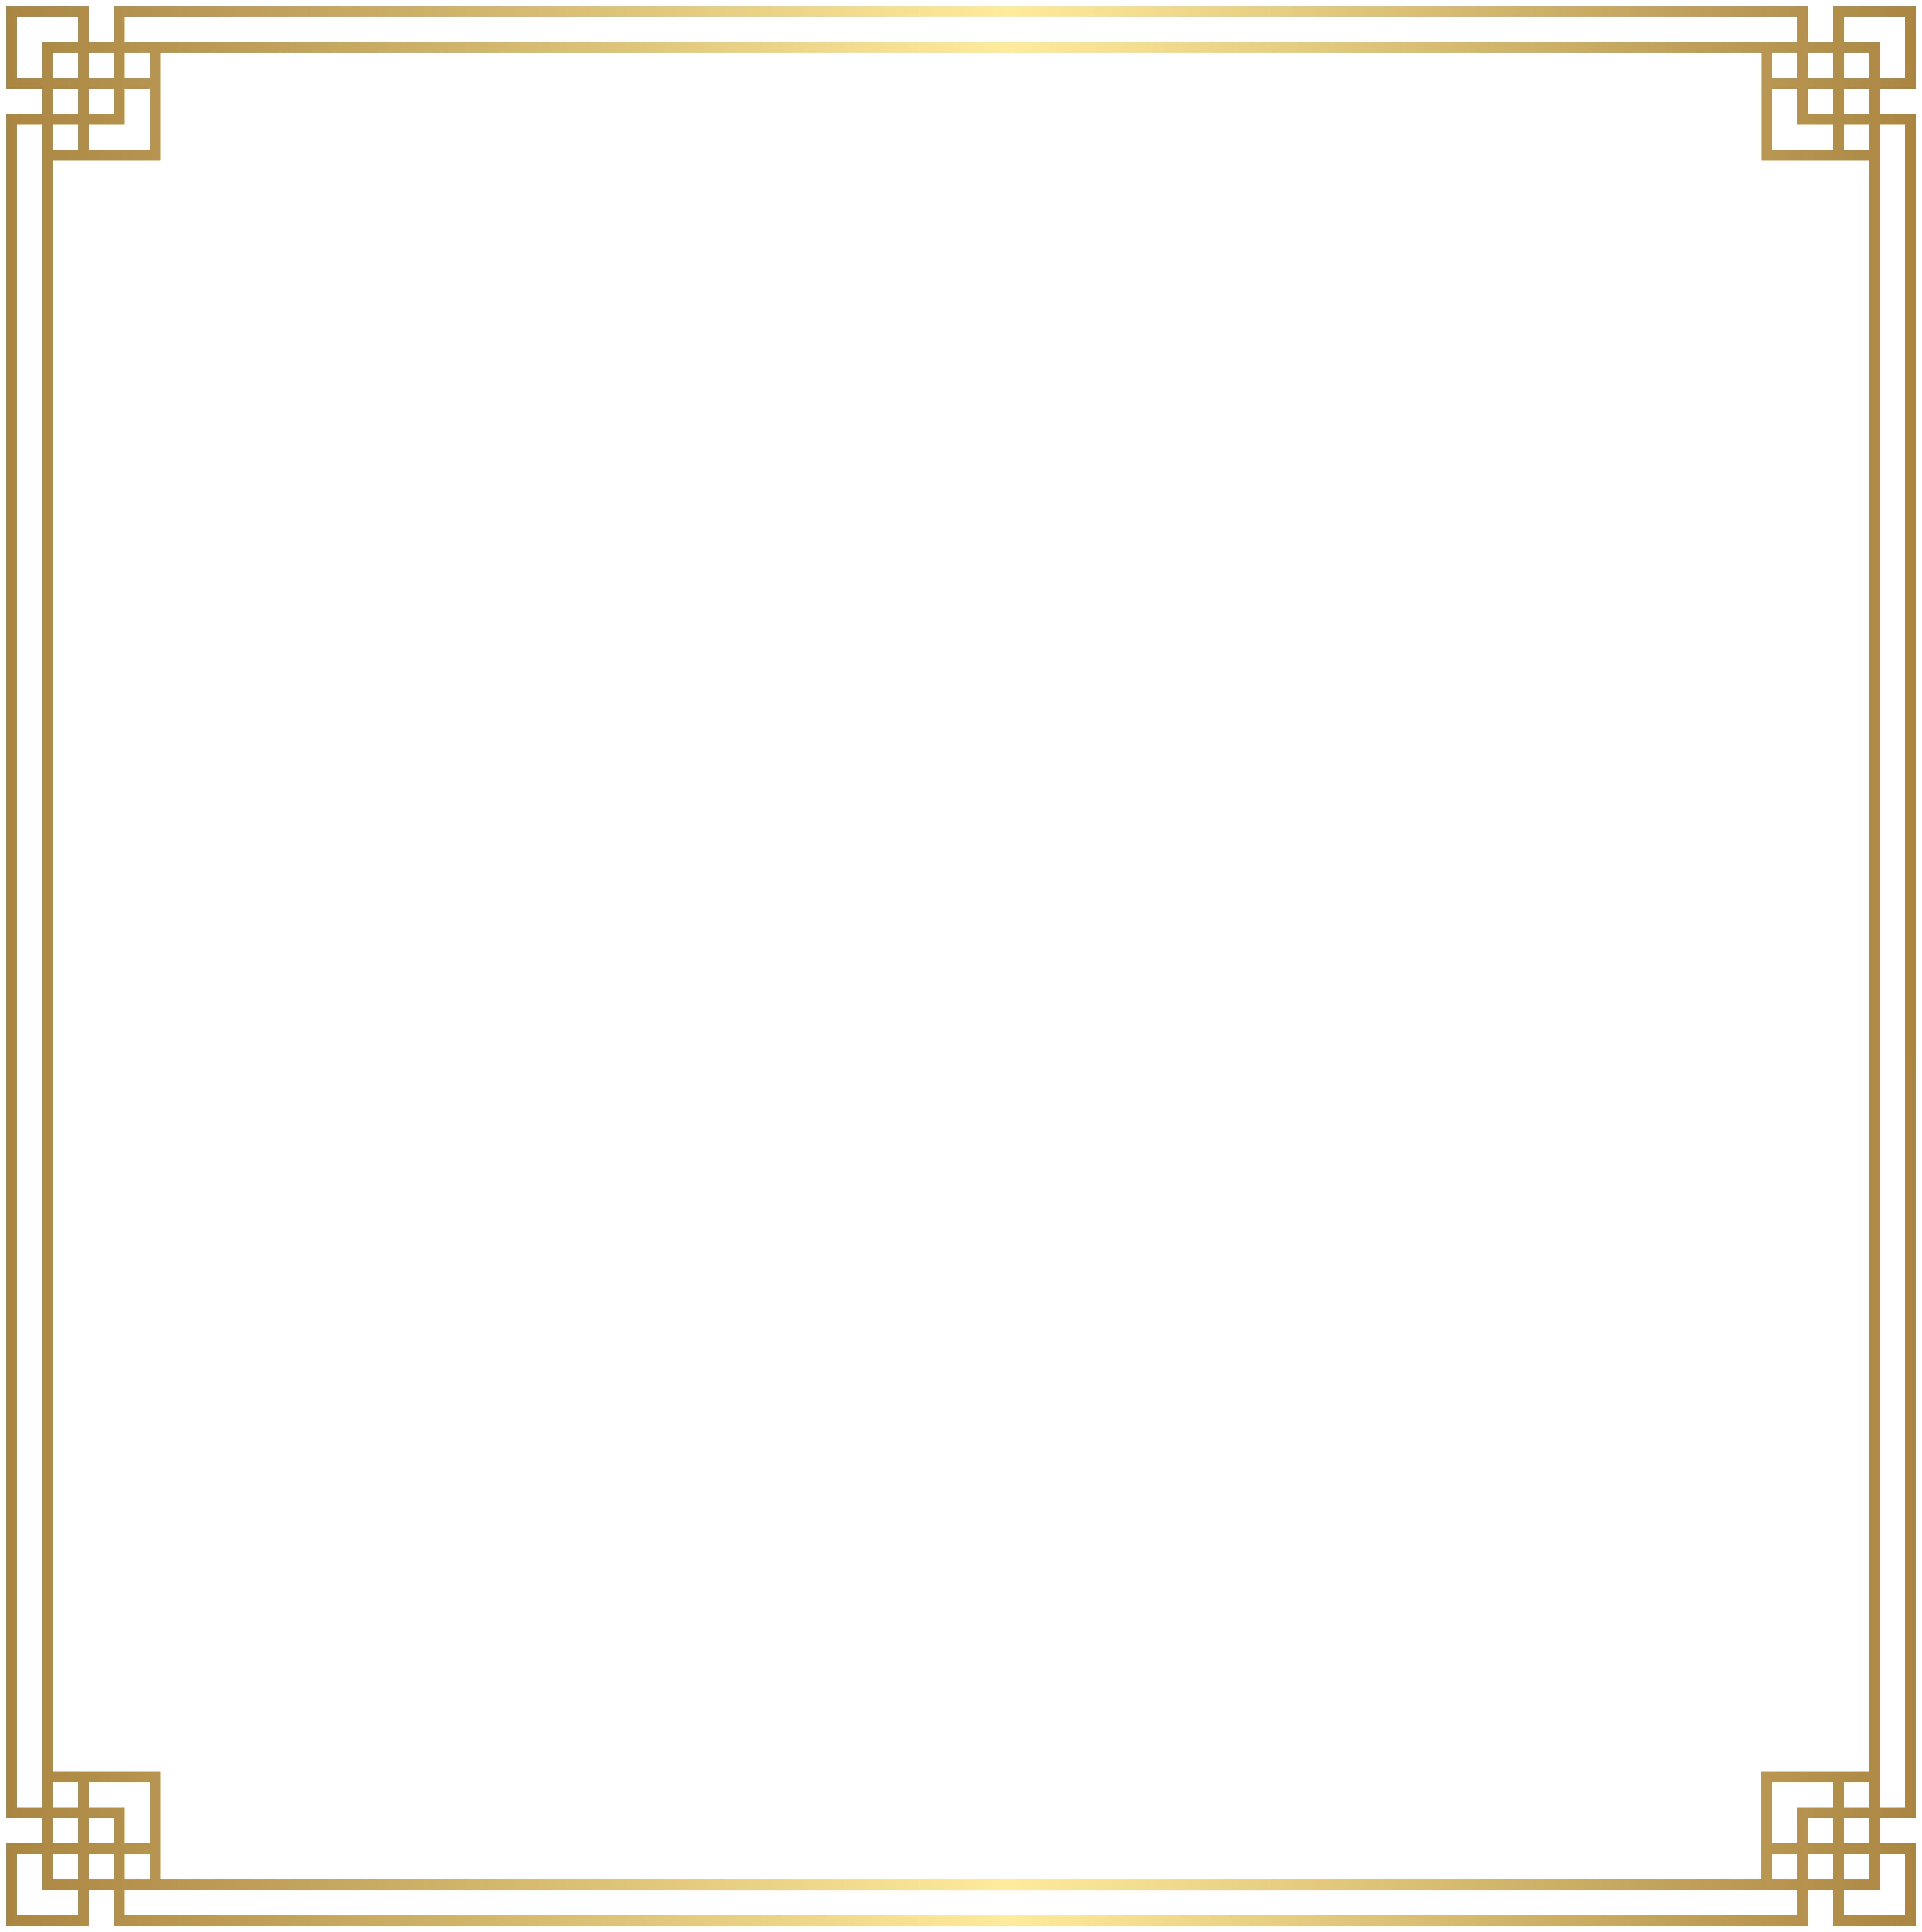 Border Frame PNG Picture